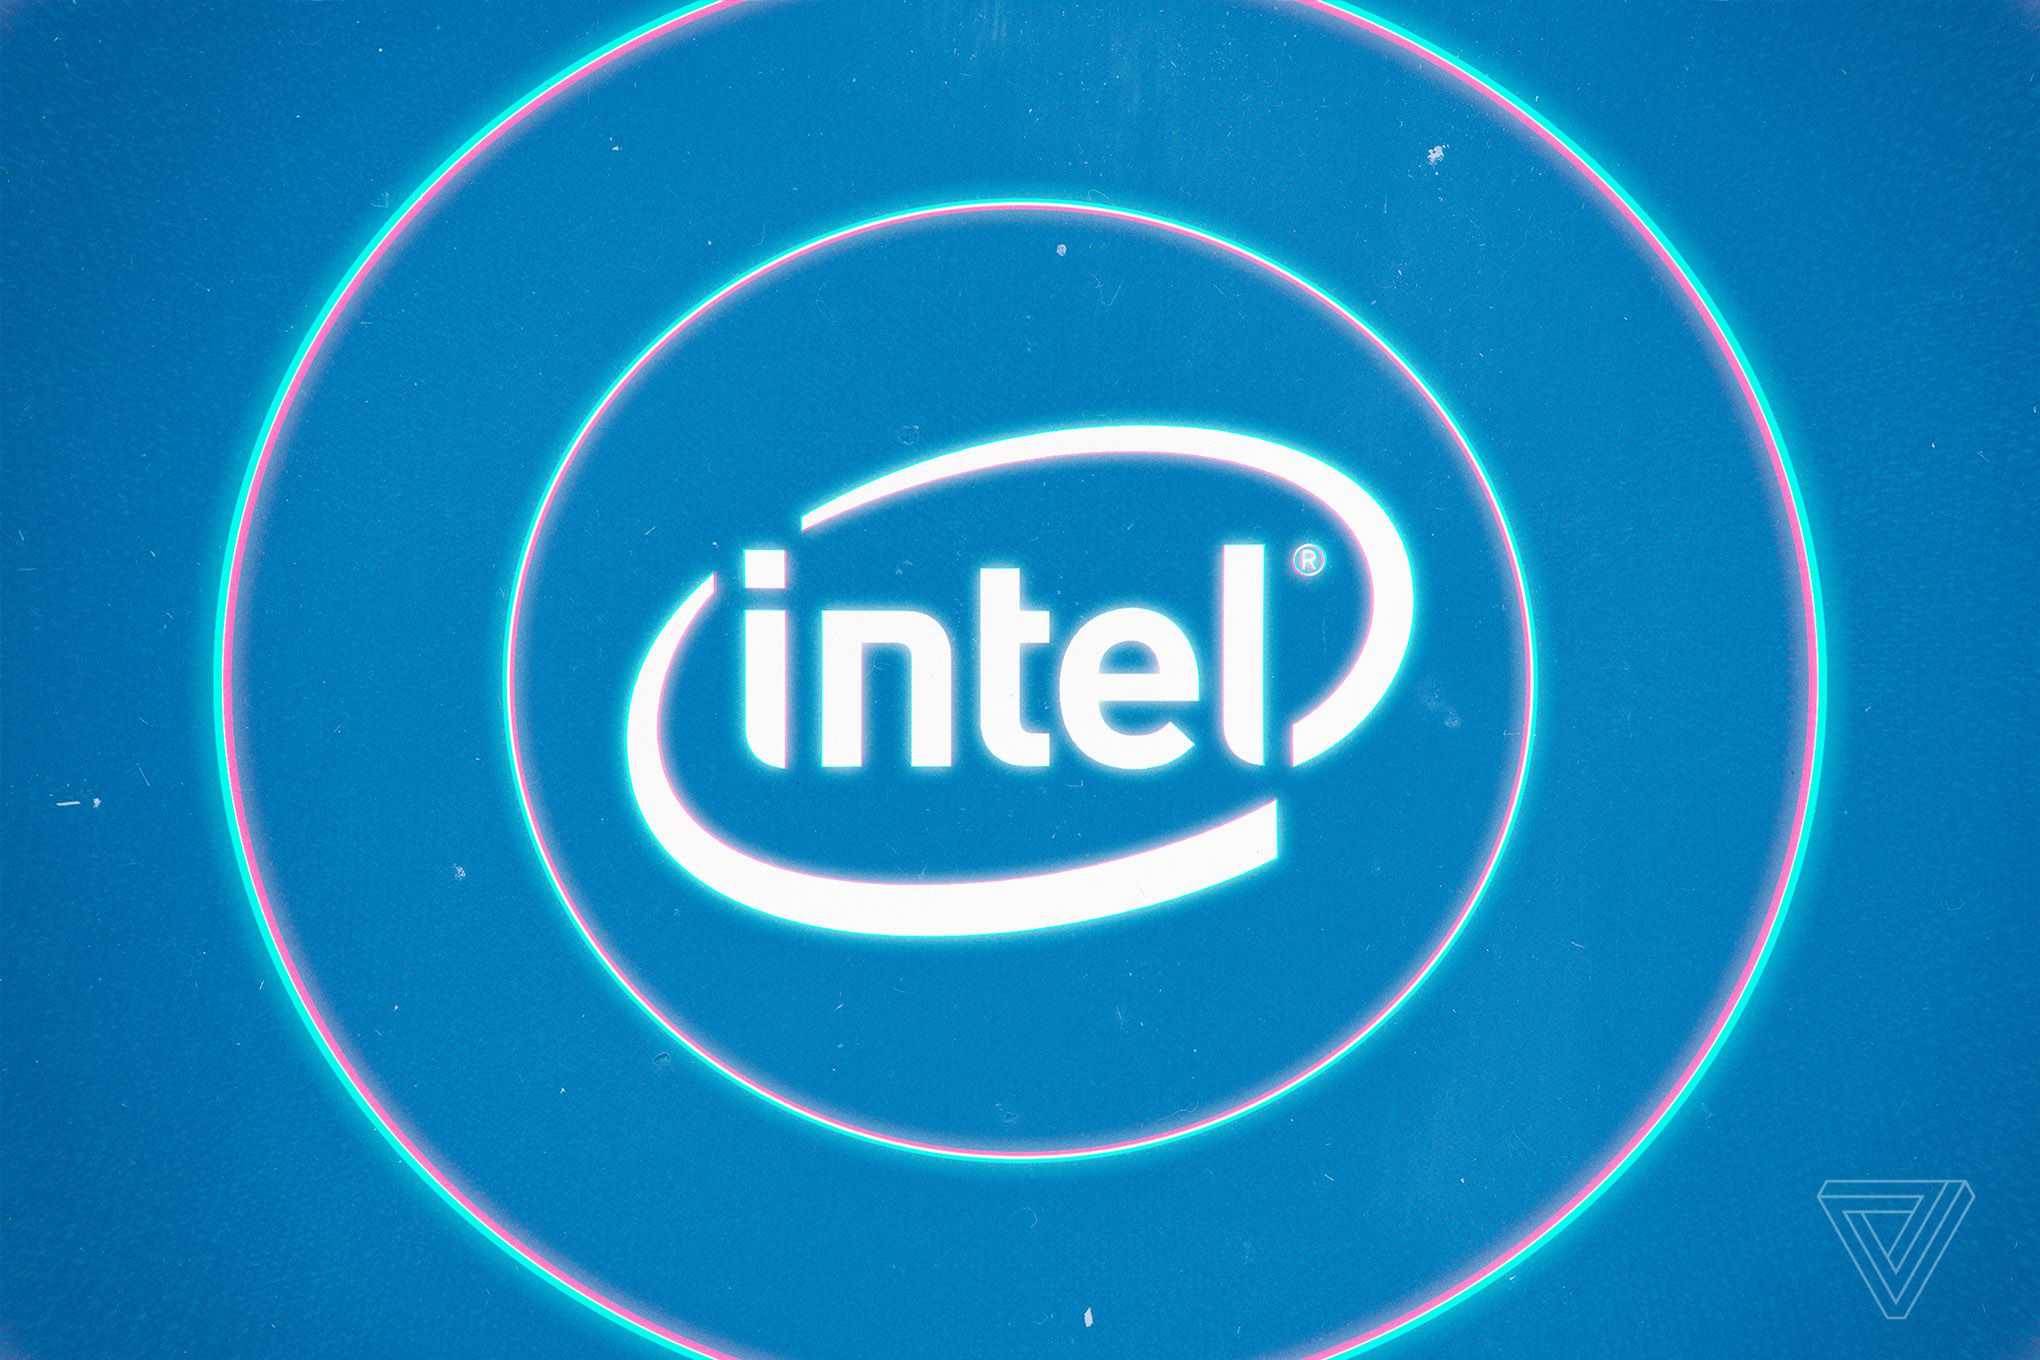 Intel's 9th generation processors rumored to launch October 1st with 8 cores https://t.co/r9x1zaFExj https://t.co/Xop0y9hWF5